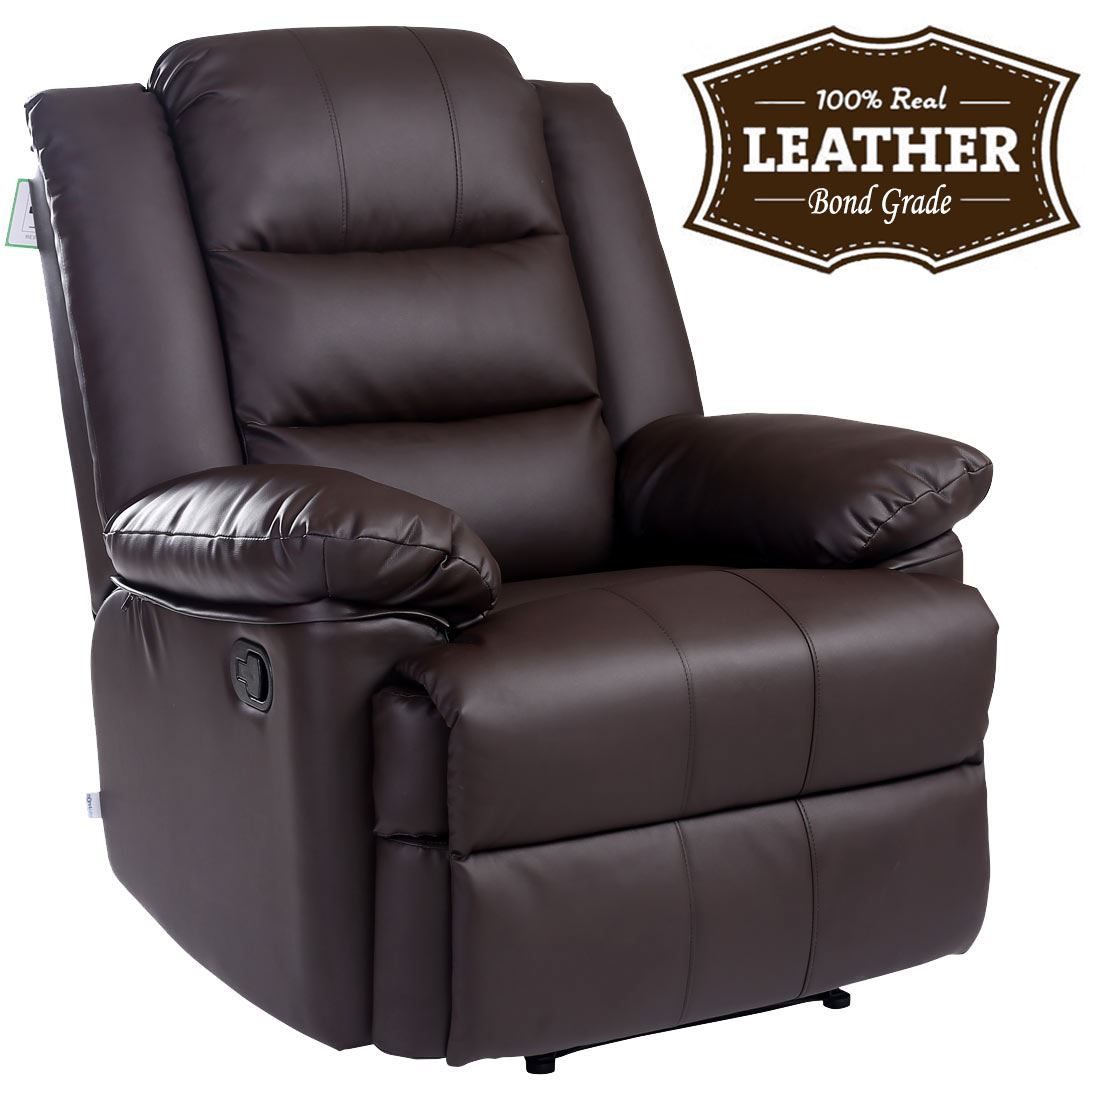 leather tilton hero recliner a